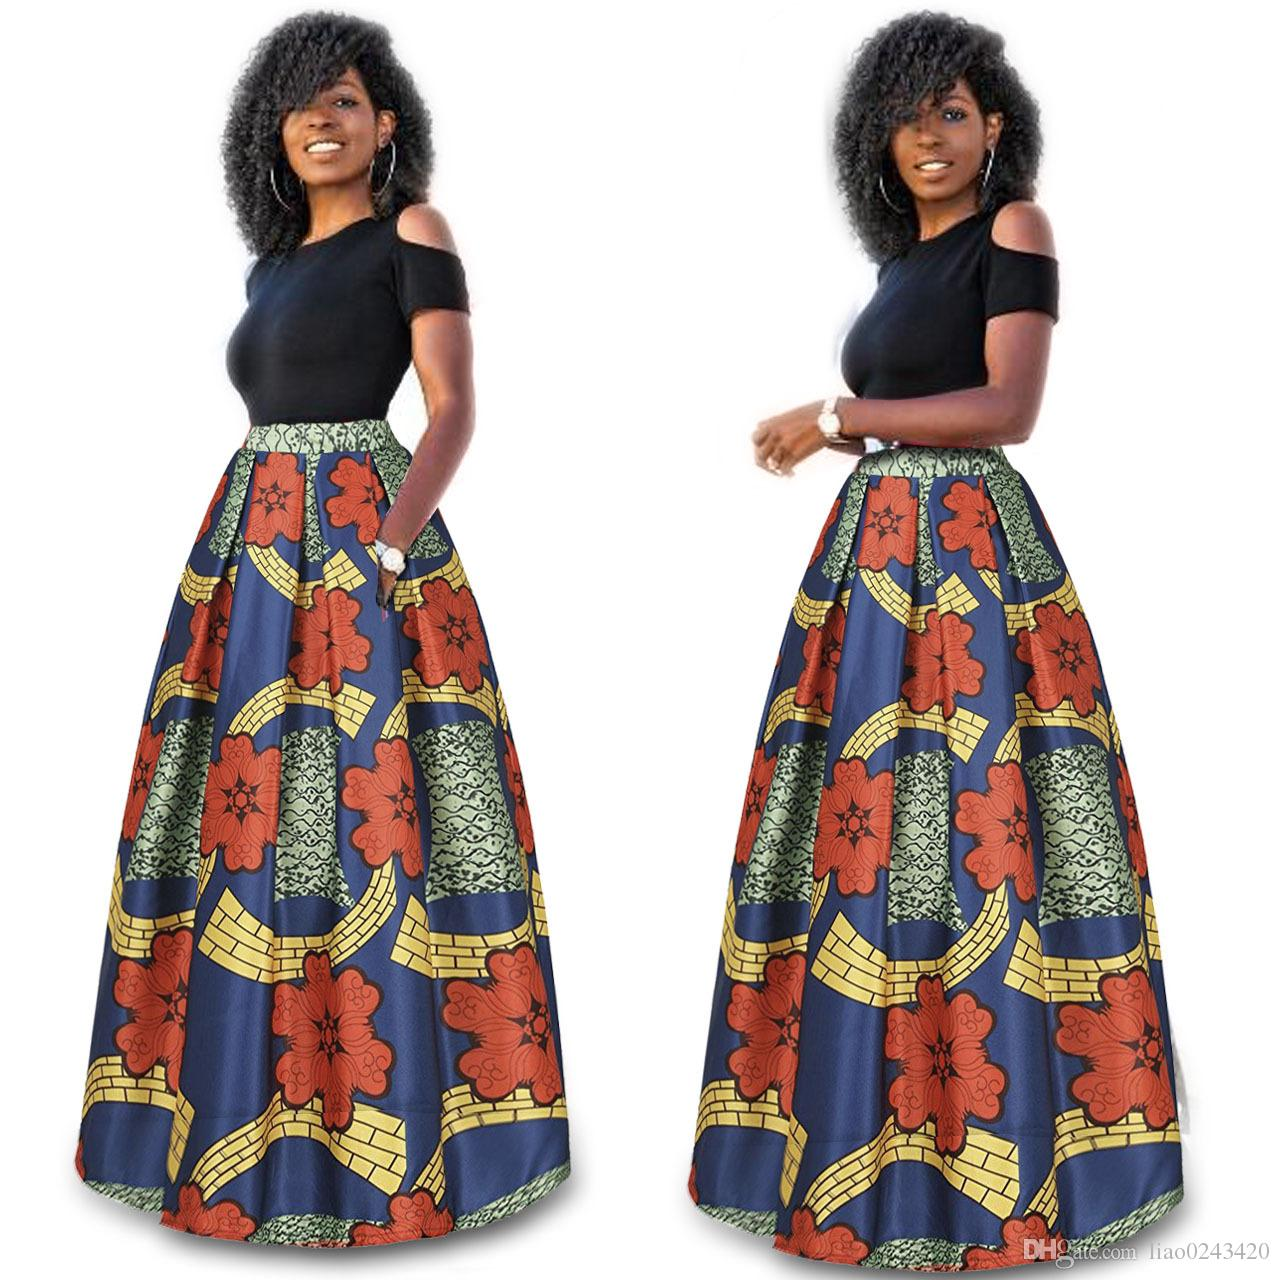 ab847f91f0ceae Navire Libre Femmes Mode Africaine Maxi Robe Taille Haute Longue Dashiki  Robe Casual Outfit 2 Pcs Costume 6XL Plus Taille